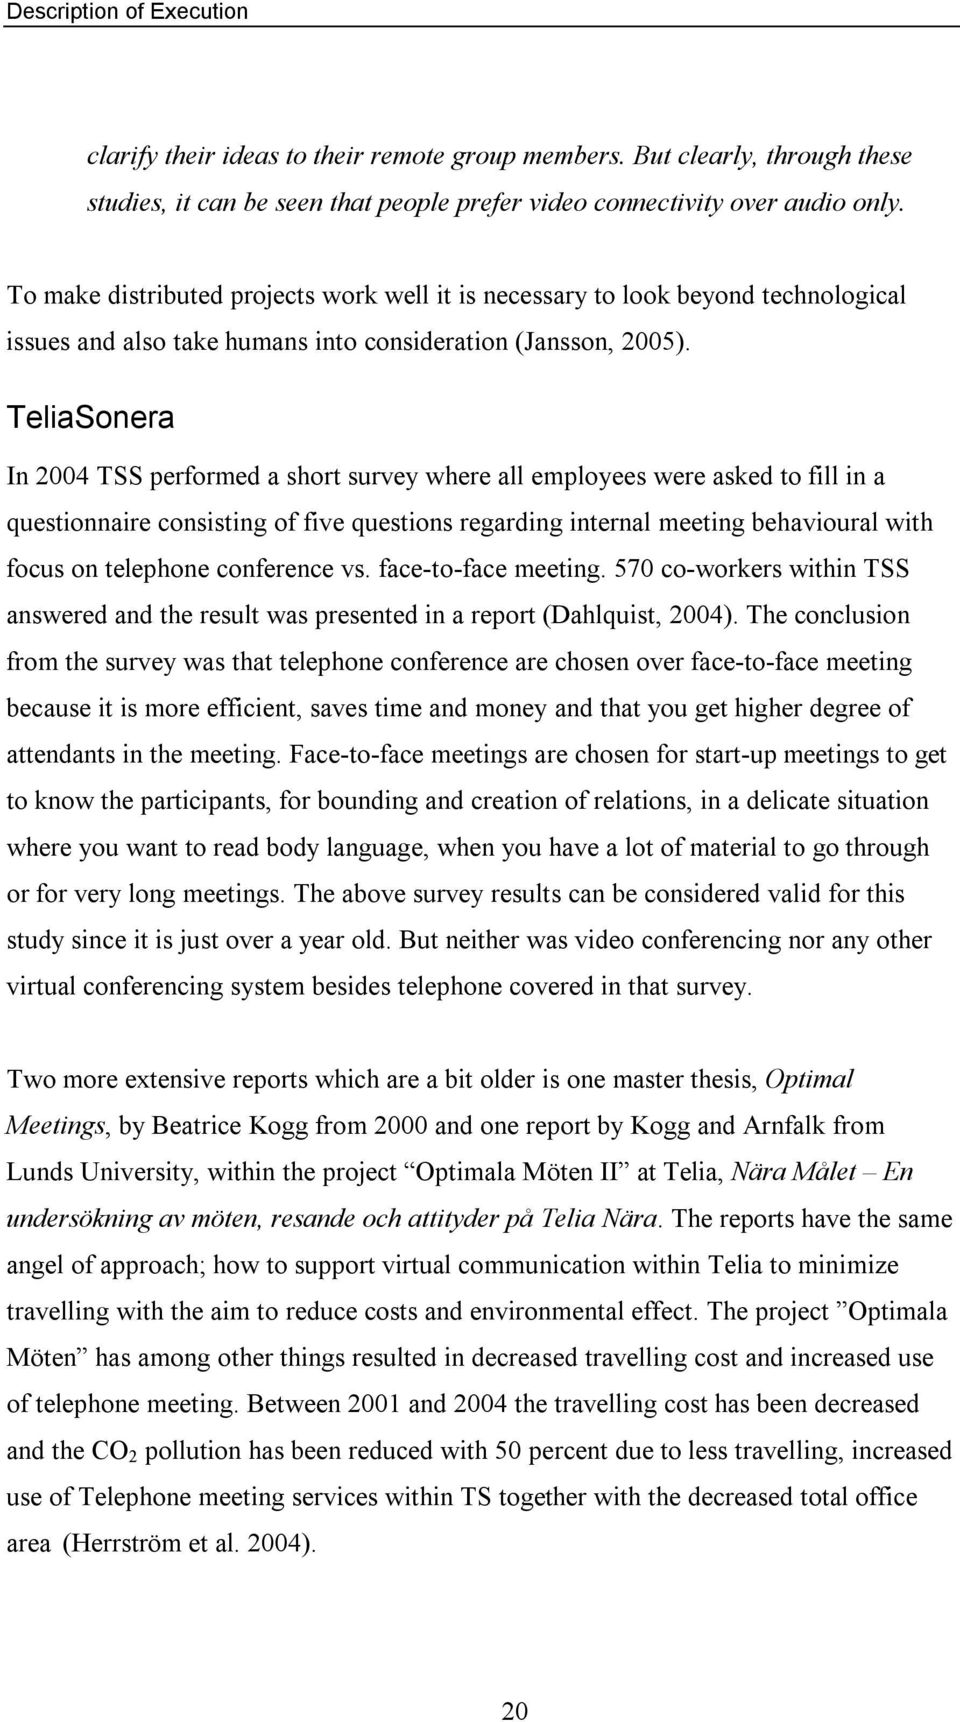 TeliaSonera In 2004 TSS performed a short survey where all employees were asked to fill in a questionnaire consisting of five questions regarding internal meeting behavioural with focus on telephone